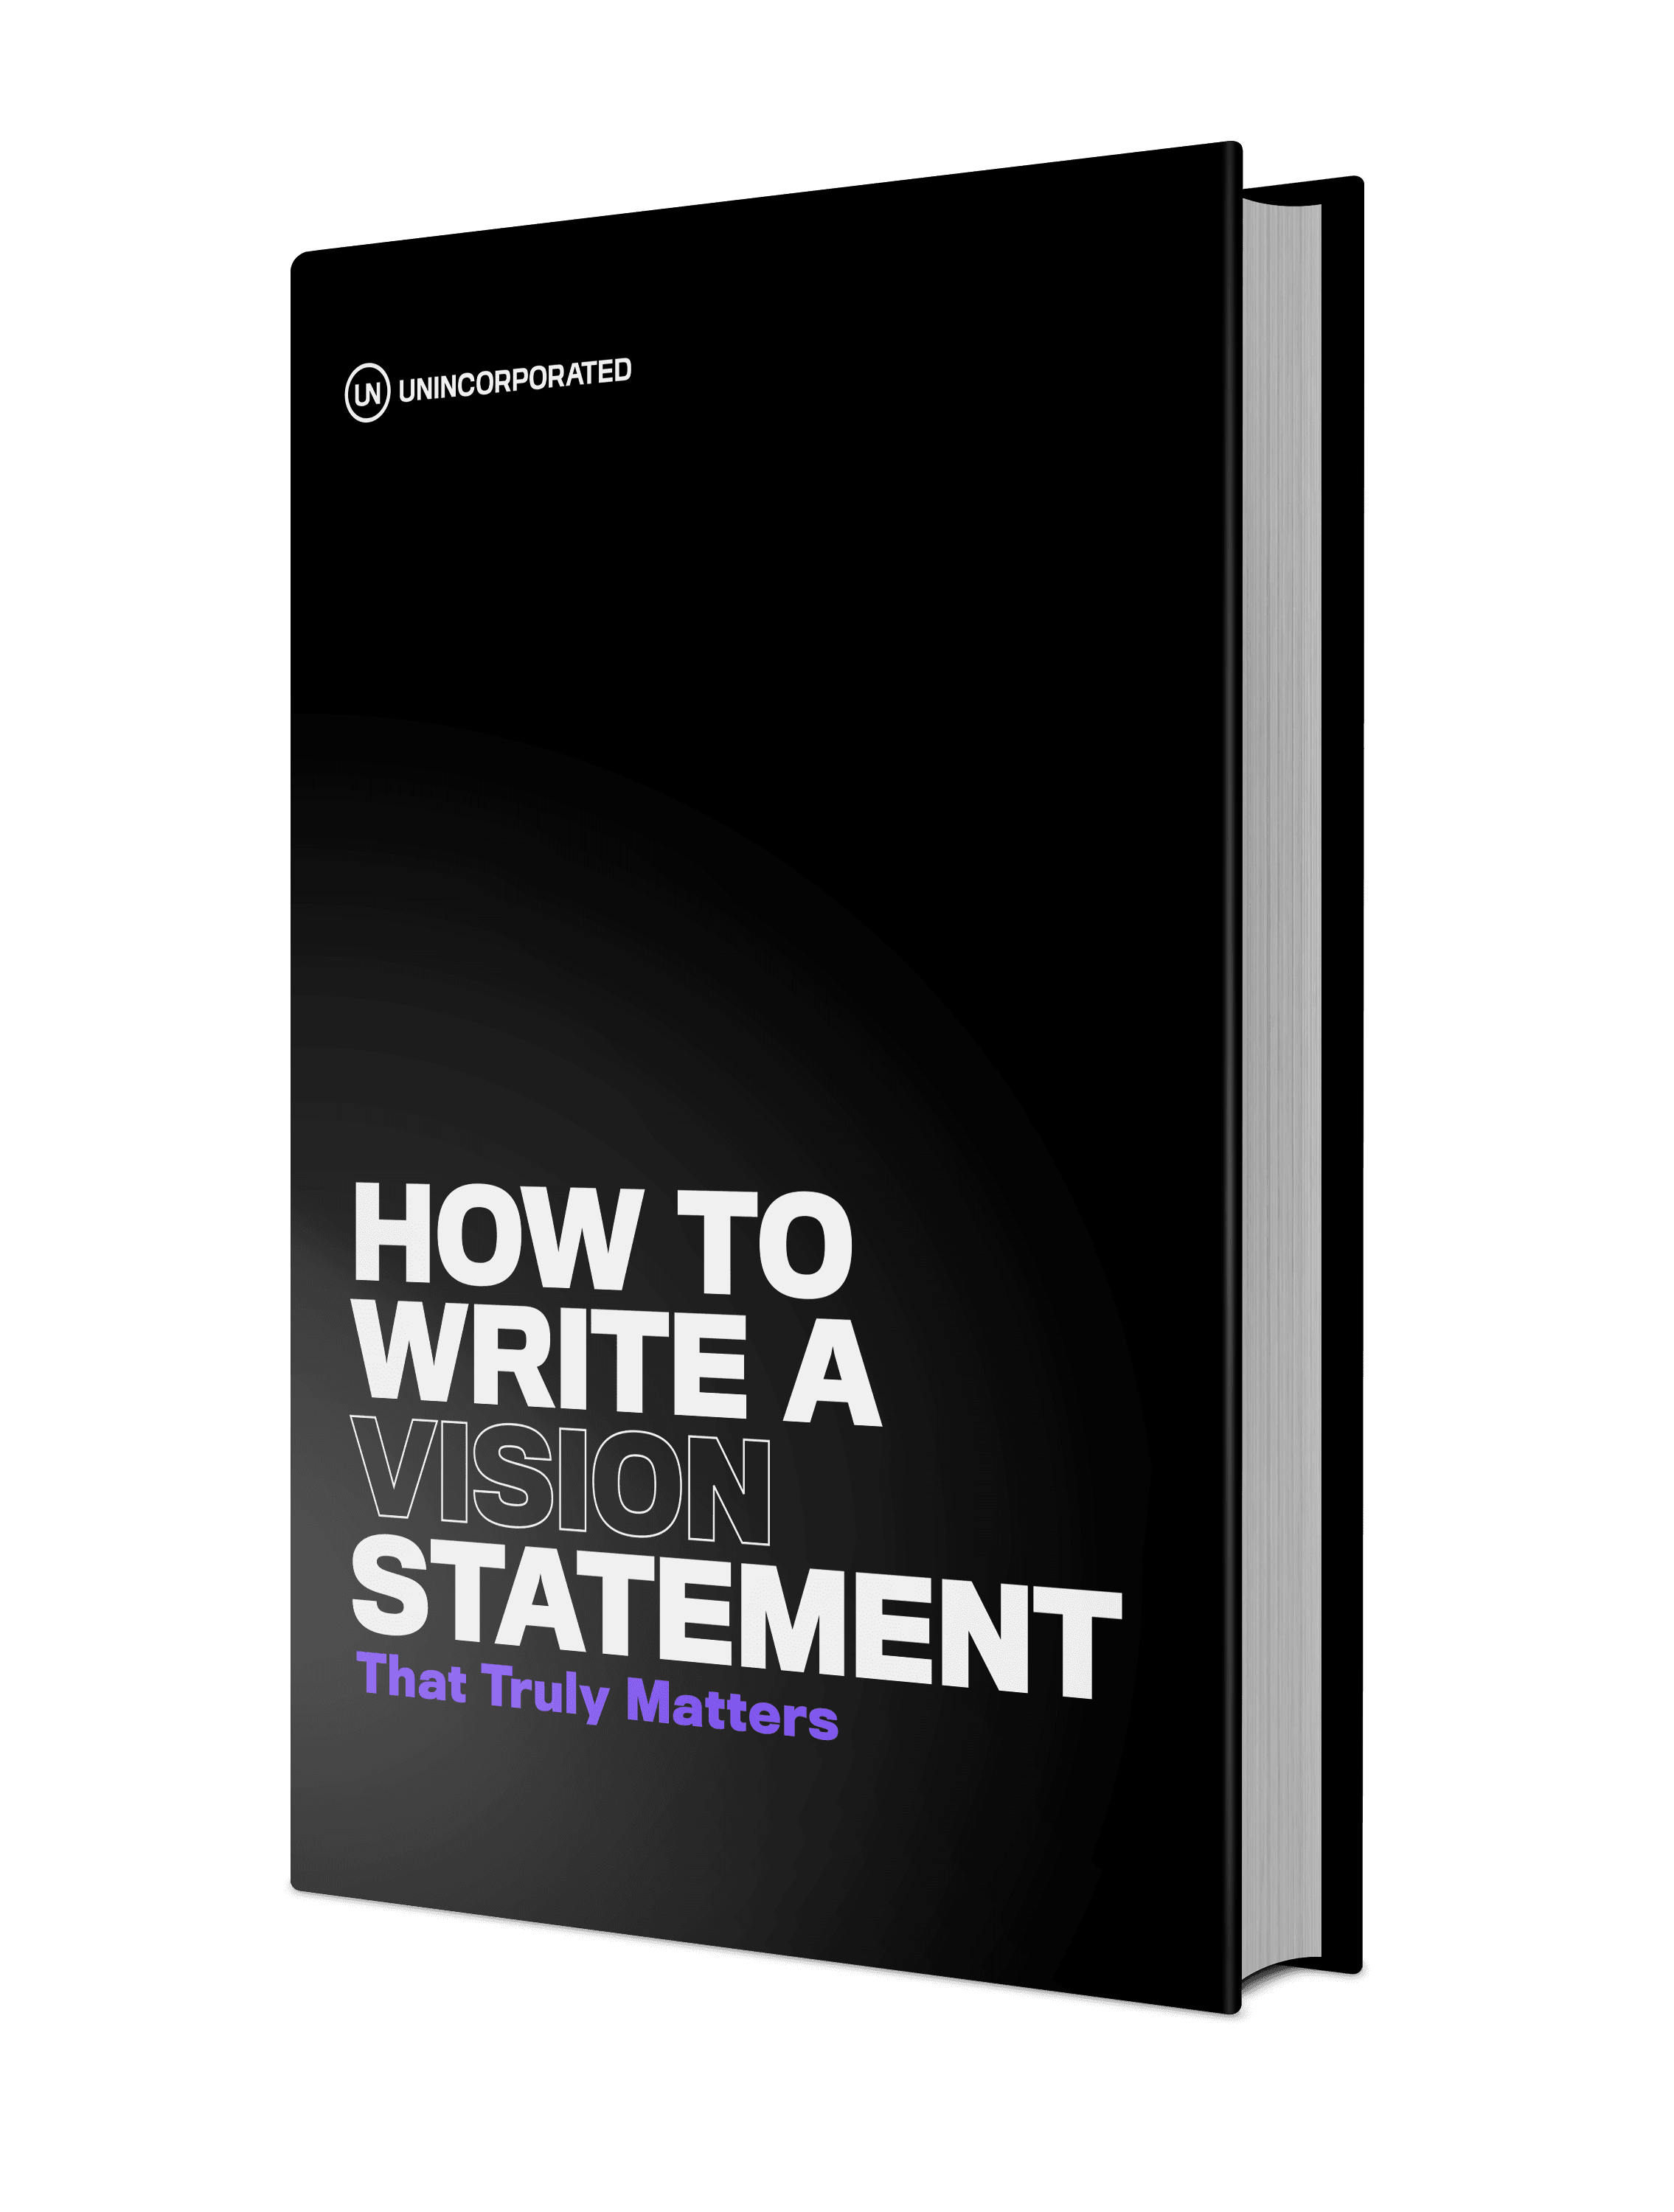 How to Write a Vision Statement that Truly Matters